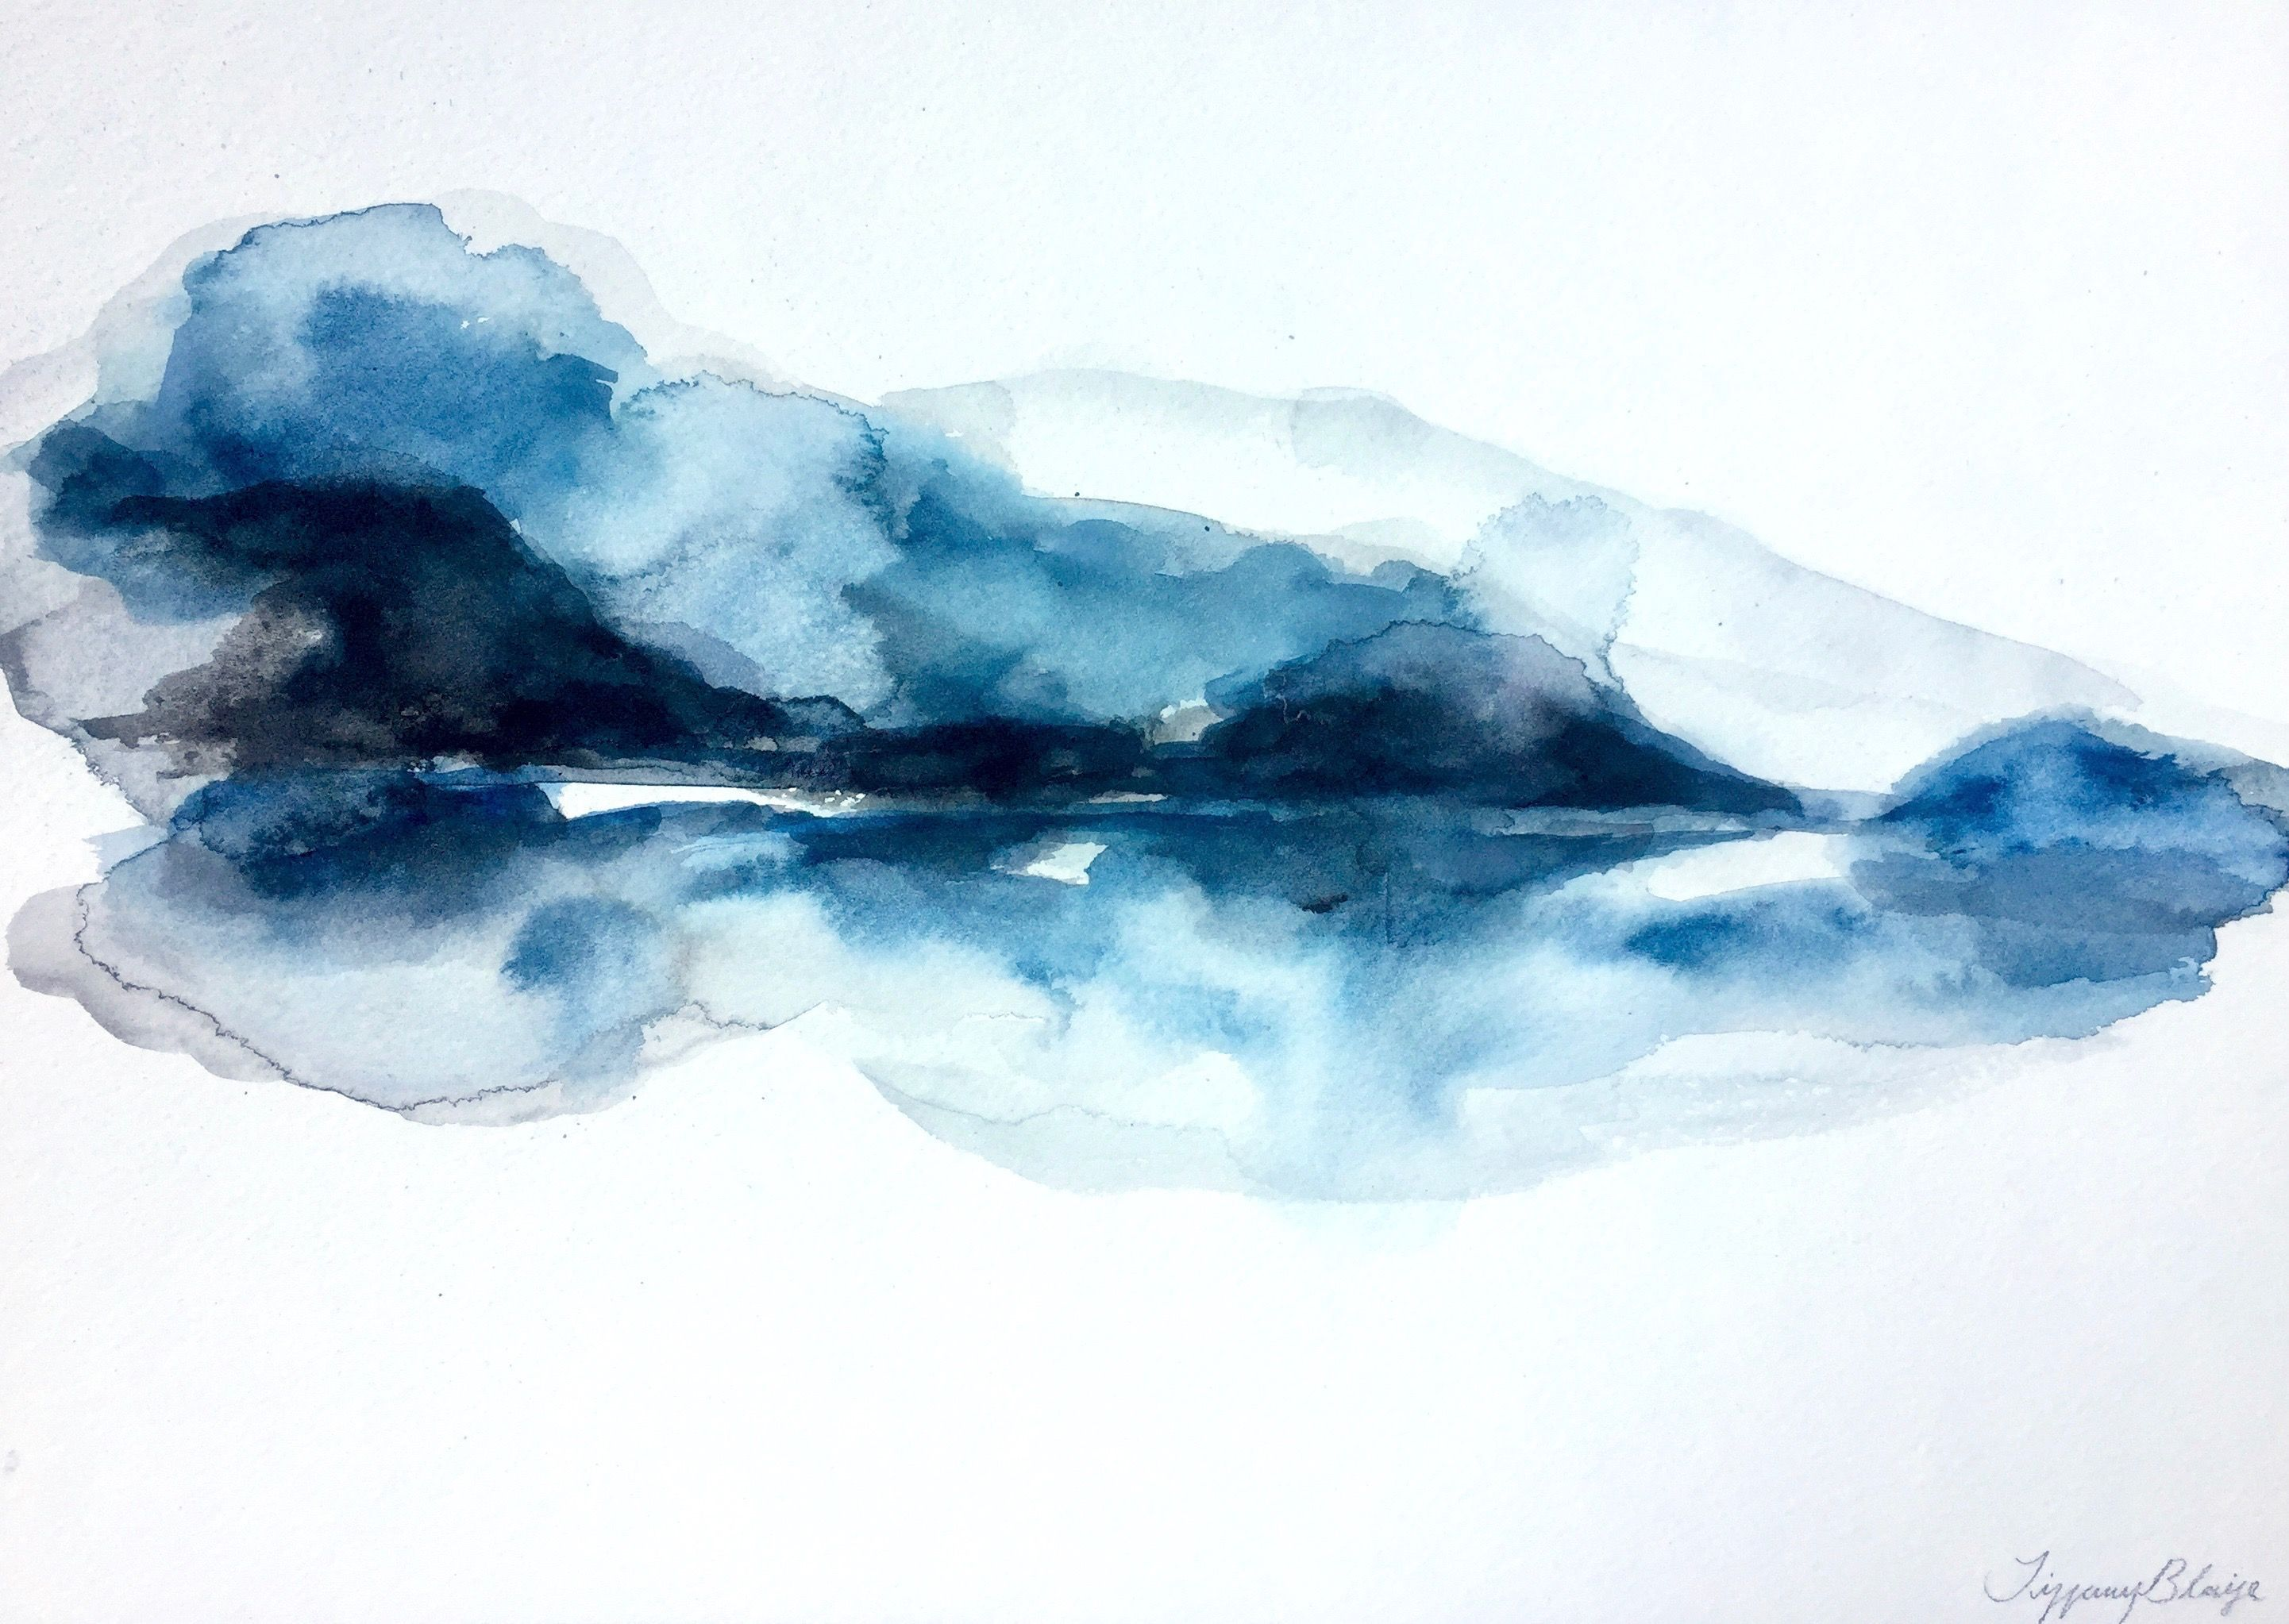 Layers Of Indigo And Black Watercolour Hues Melt Together To